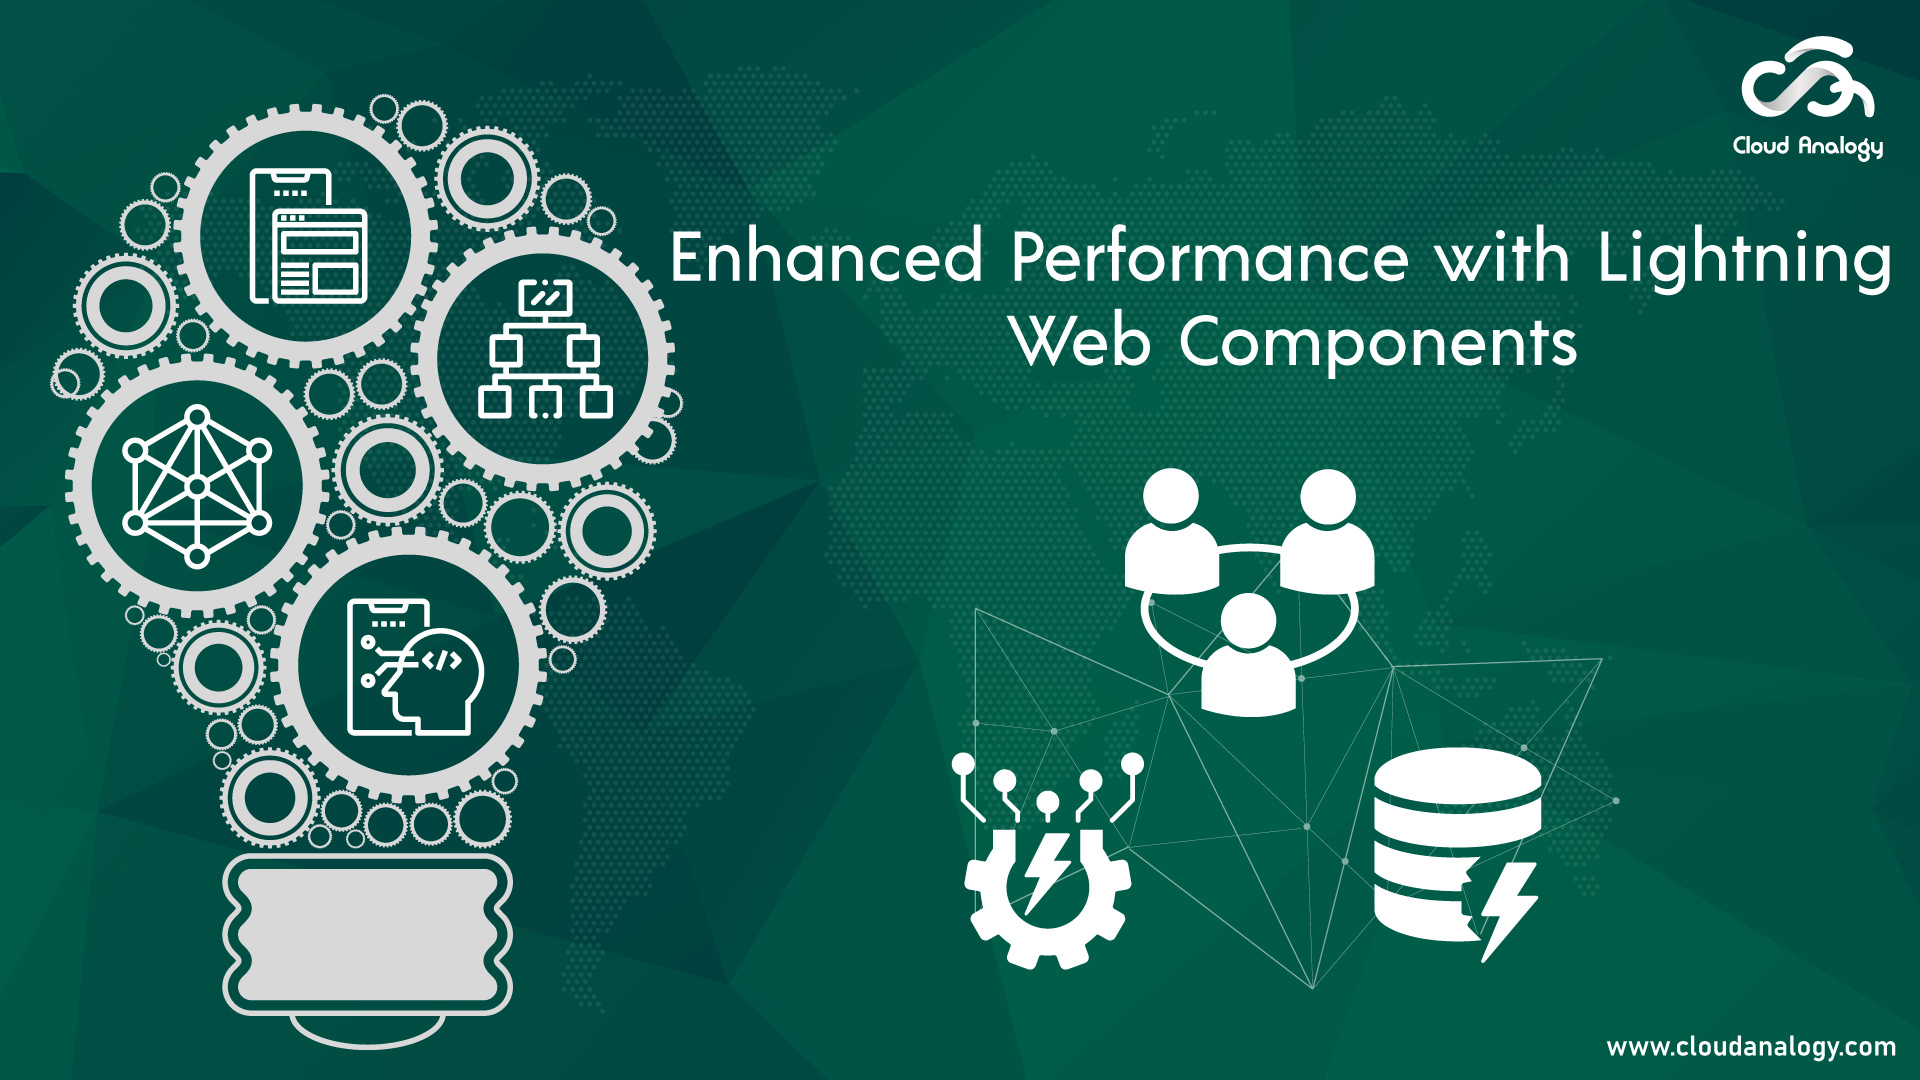 Enhanced Performance with Lightning Web Components